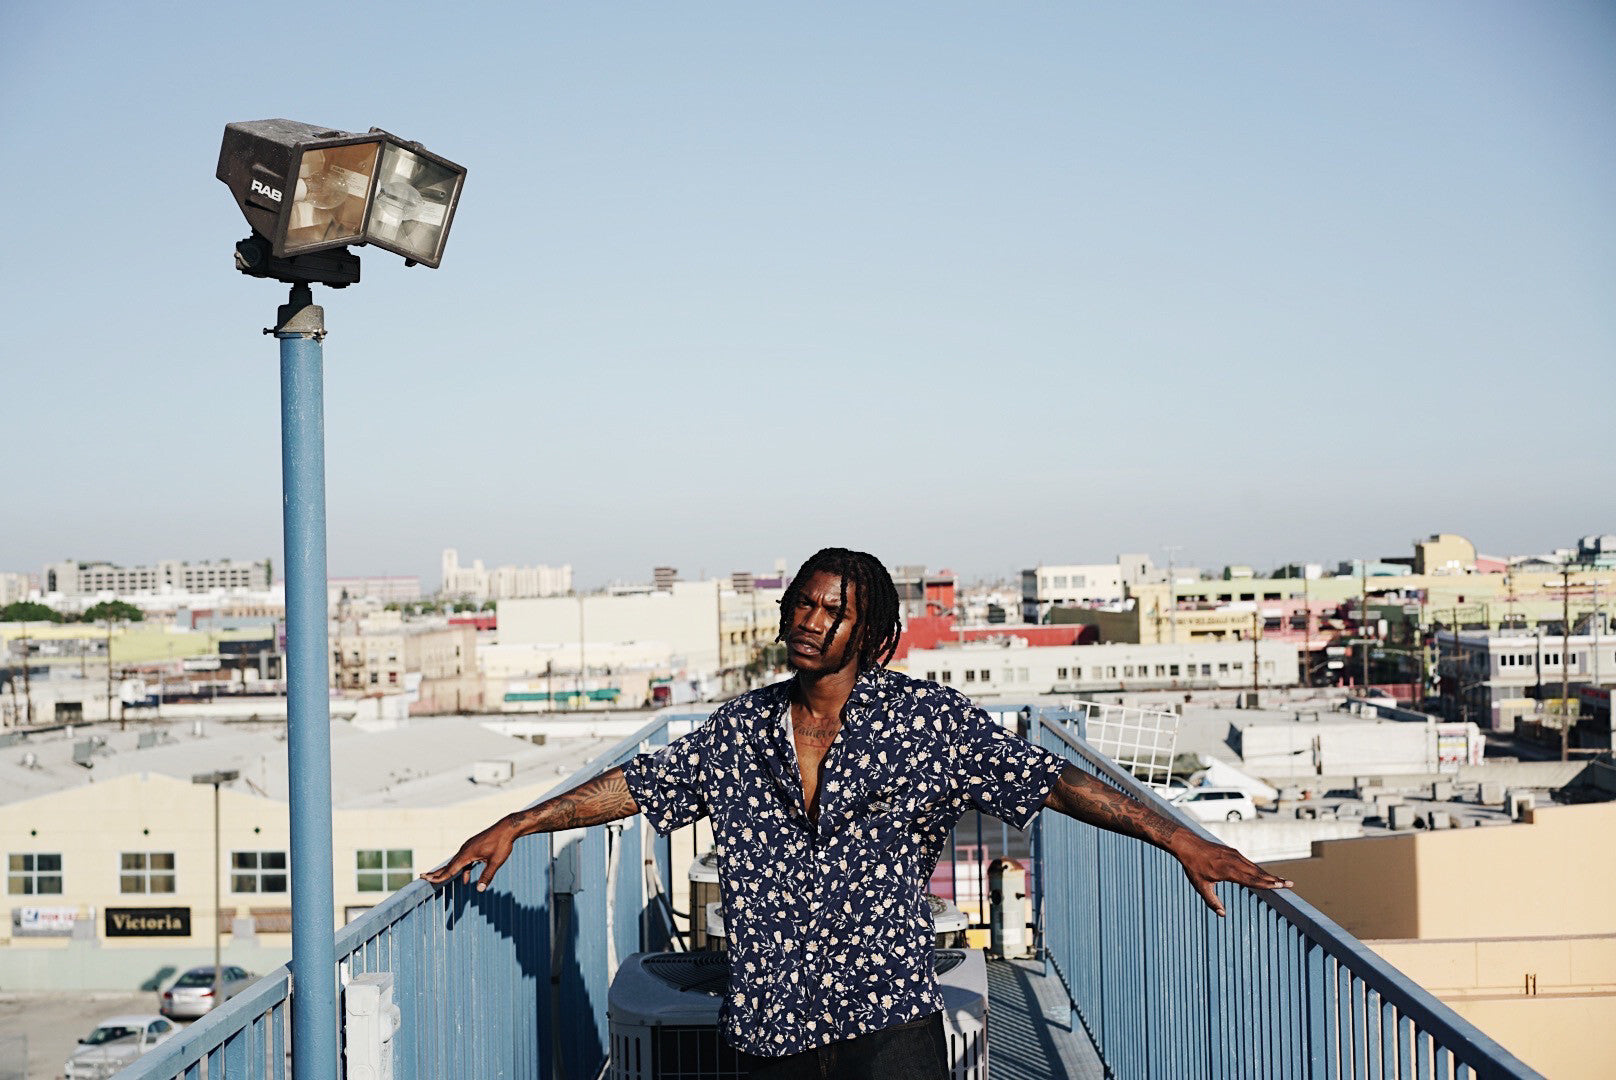 John Givez shot by Sergey Kolivayko for ABC